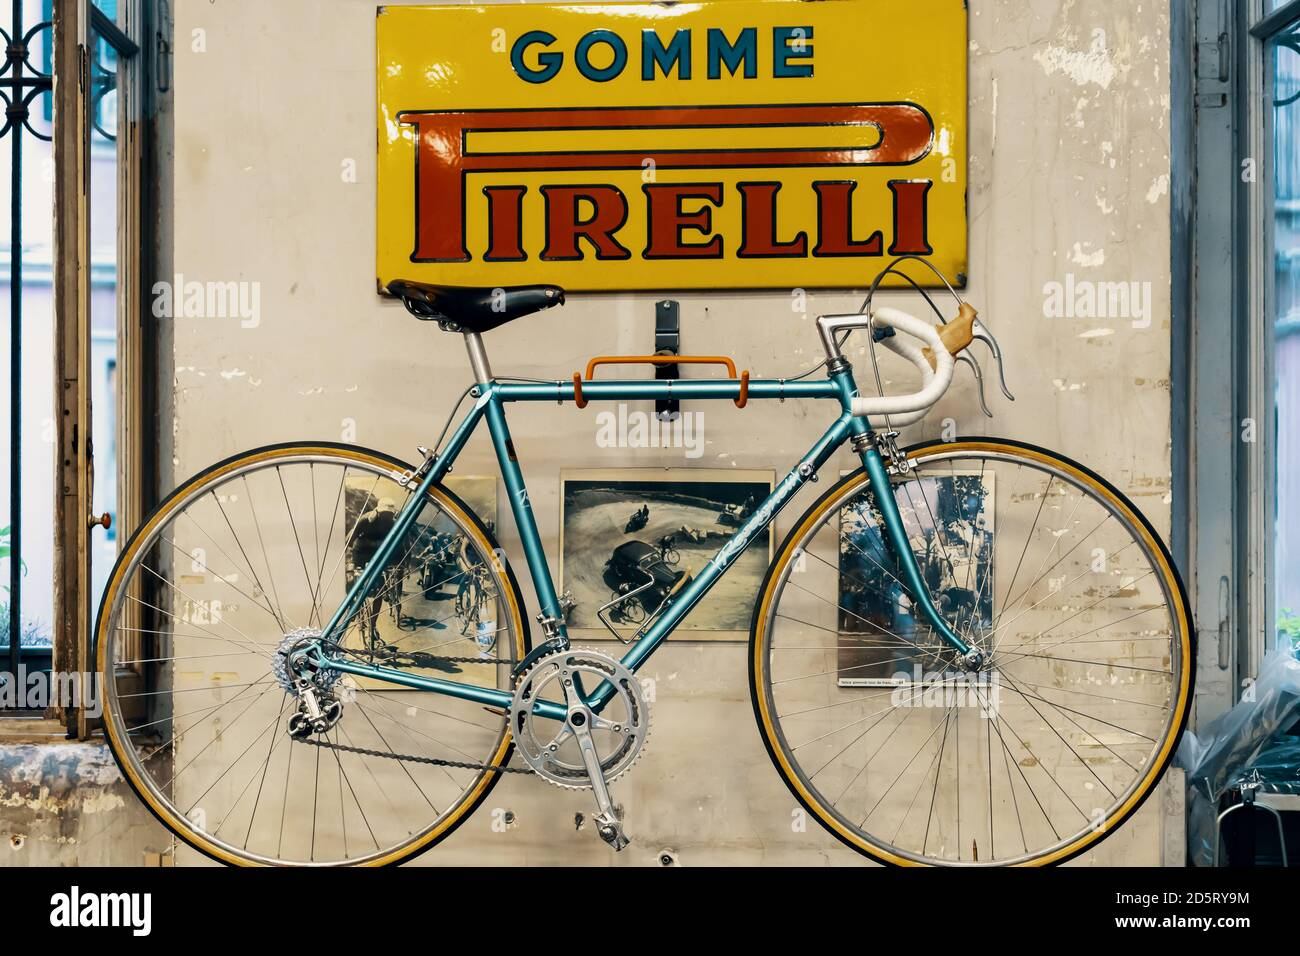 Logo Pirelli on the wall, bicycle in bicycle store. Pirelli is an Italian multinational company, focused on the consumer business. Milan, Italy - 28 Stock Photo